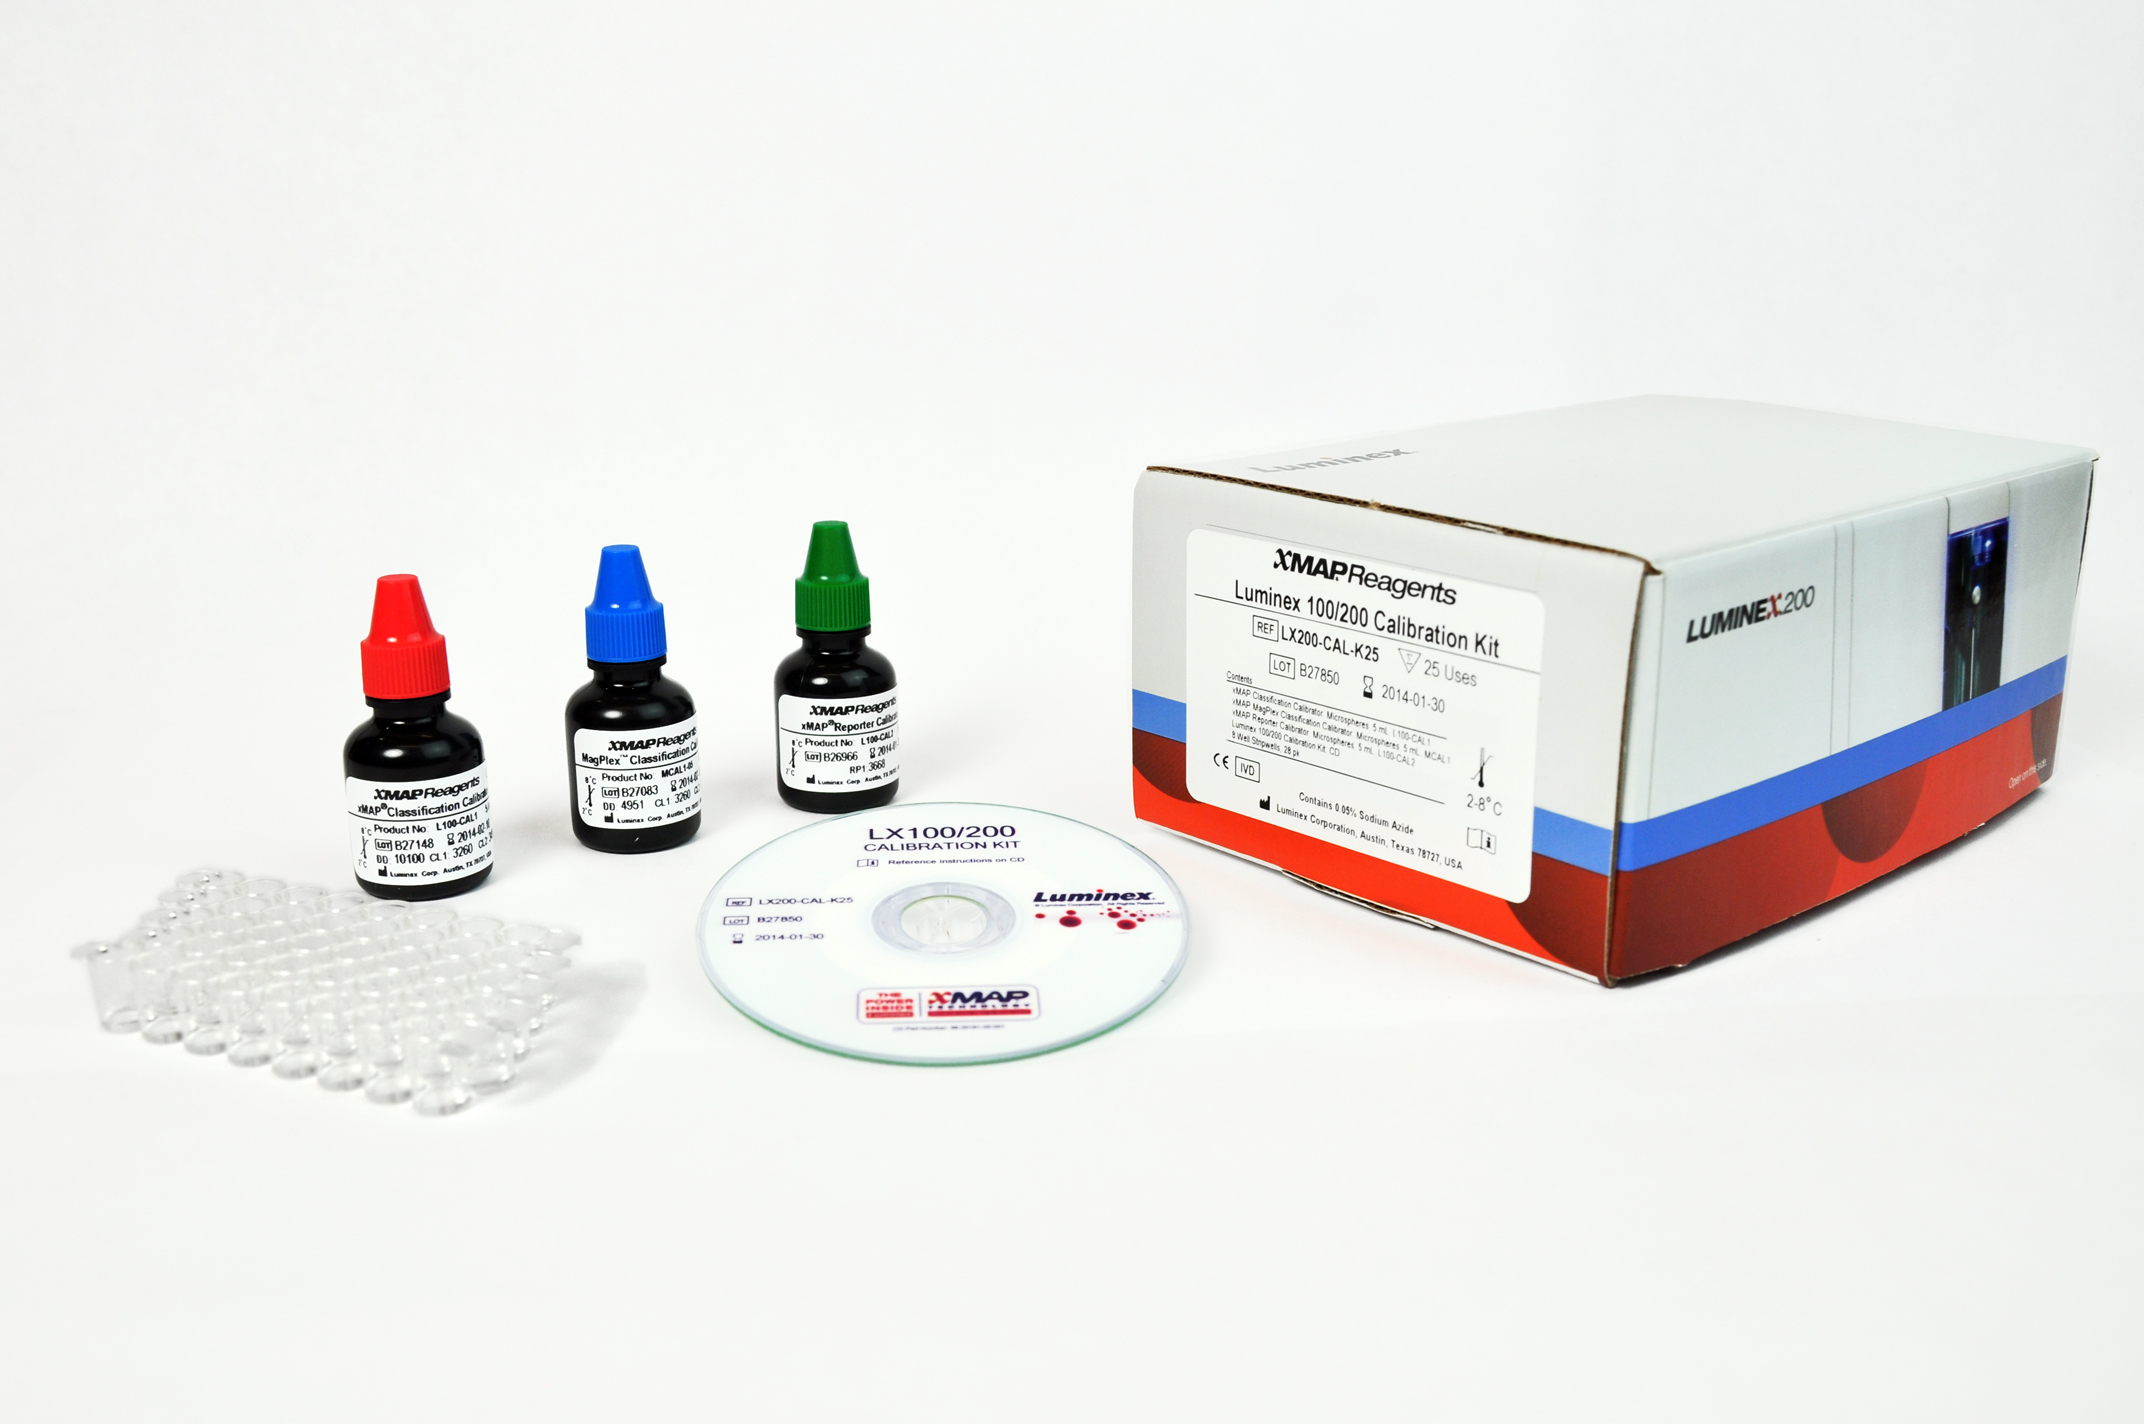 Luminex 100/200 Calibration Kit